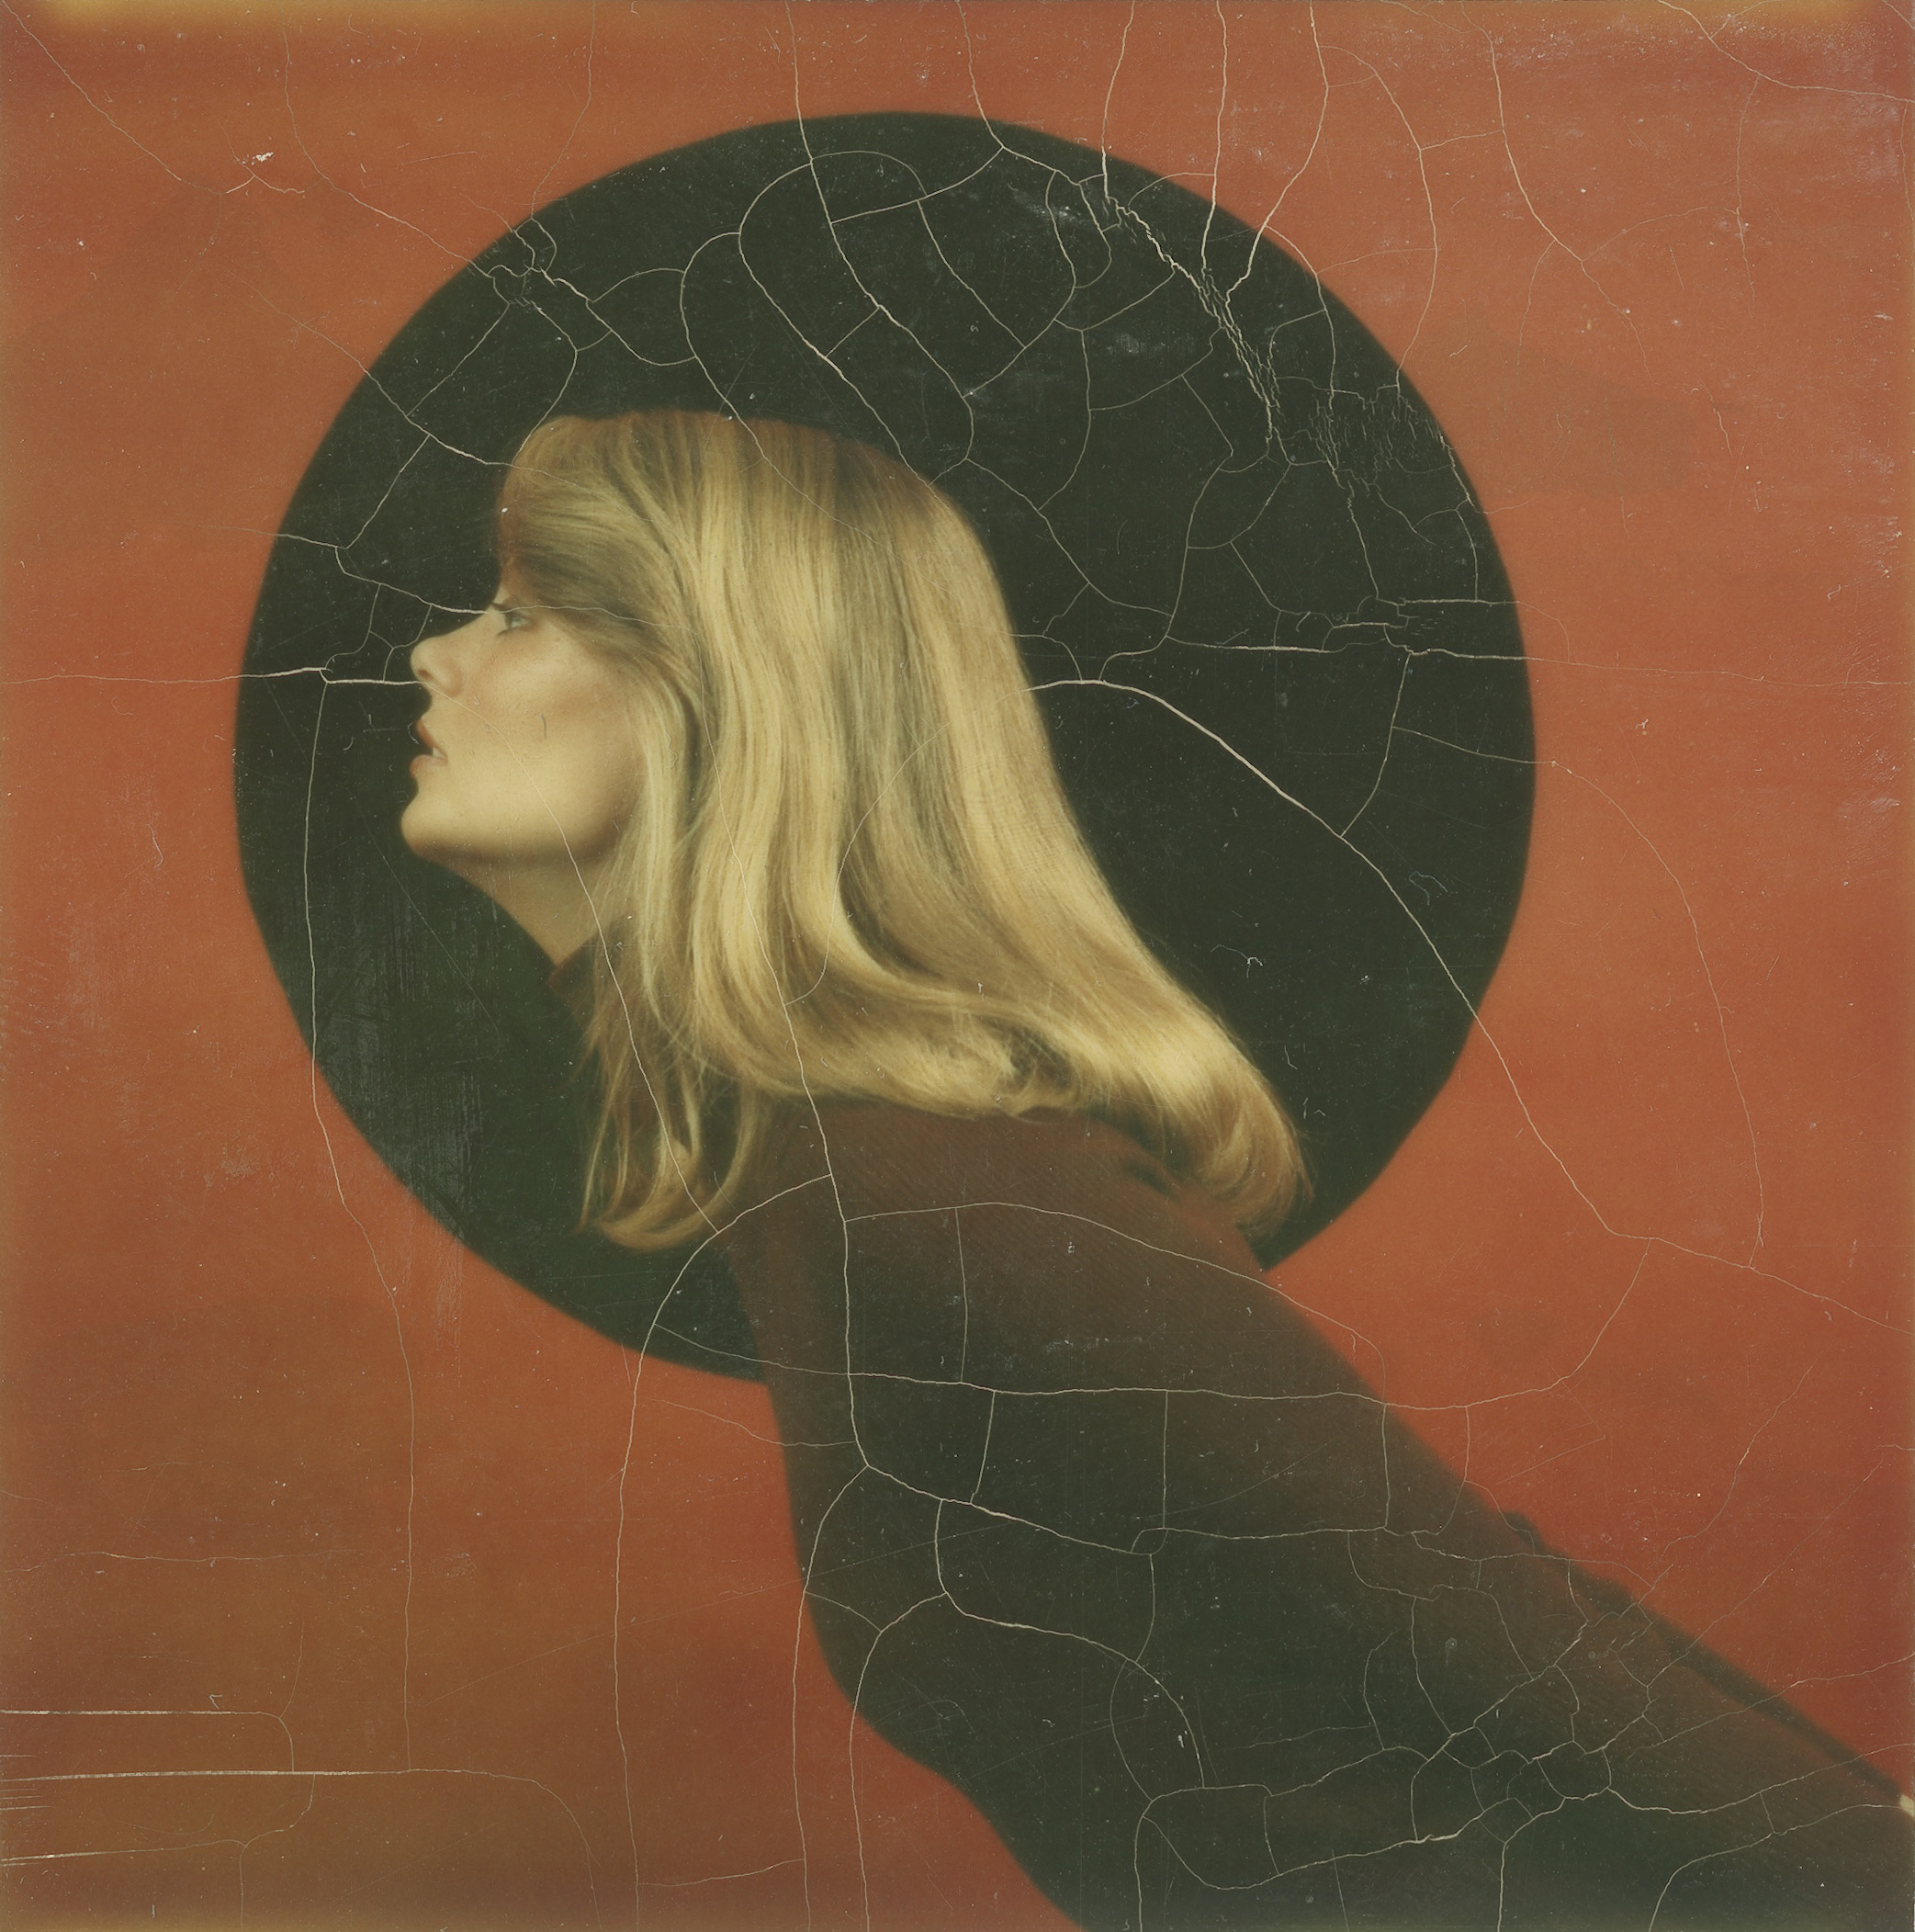 Portrait of a fashion model, made with a Polaroid SX-70 camera, 1972.